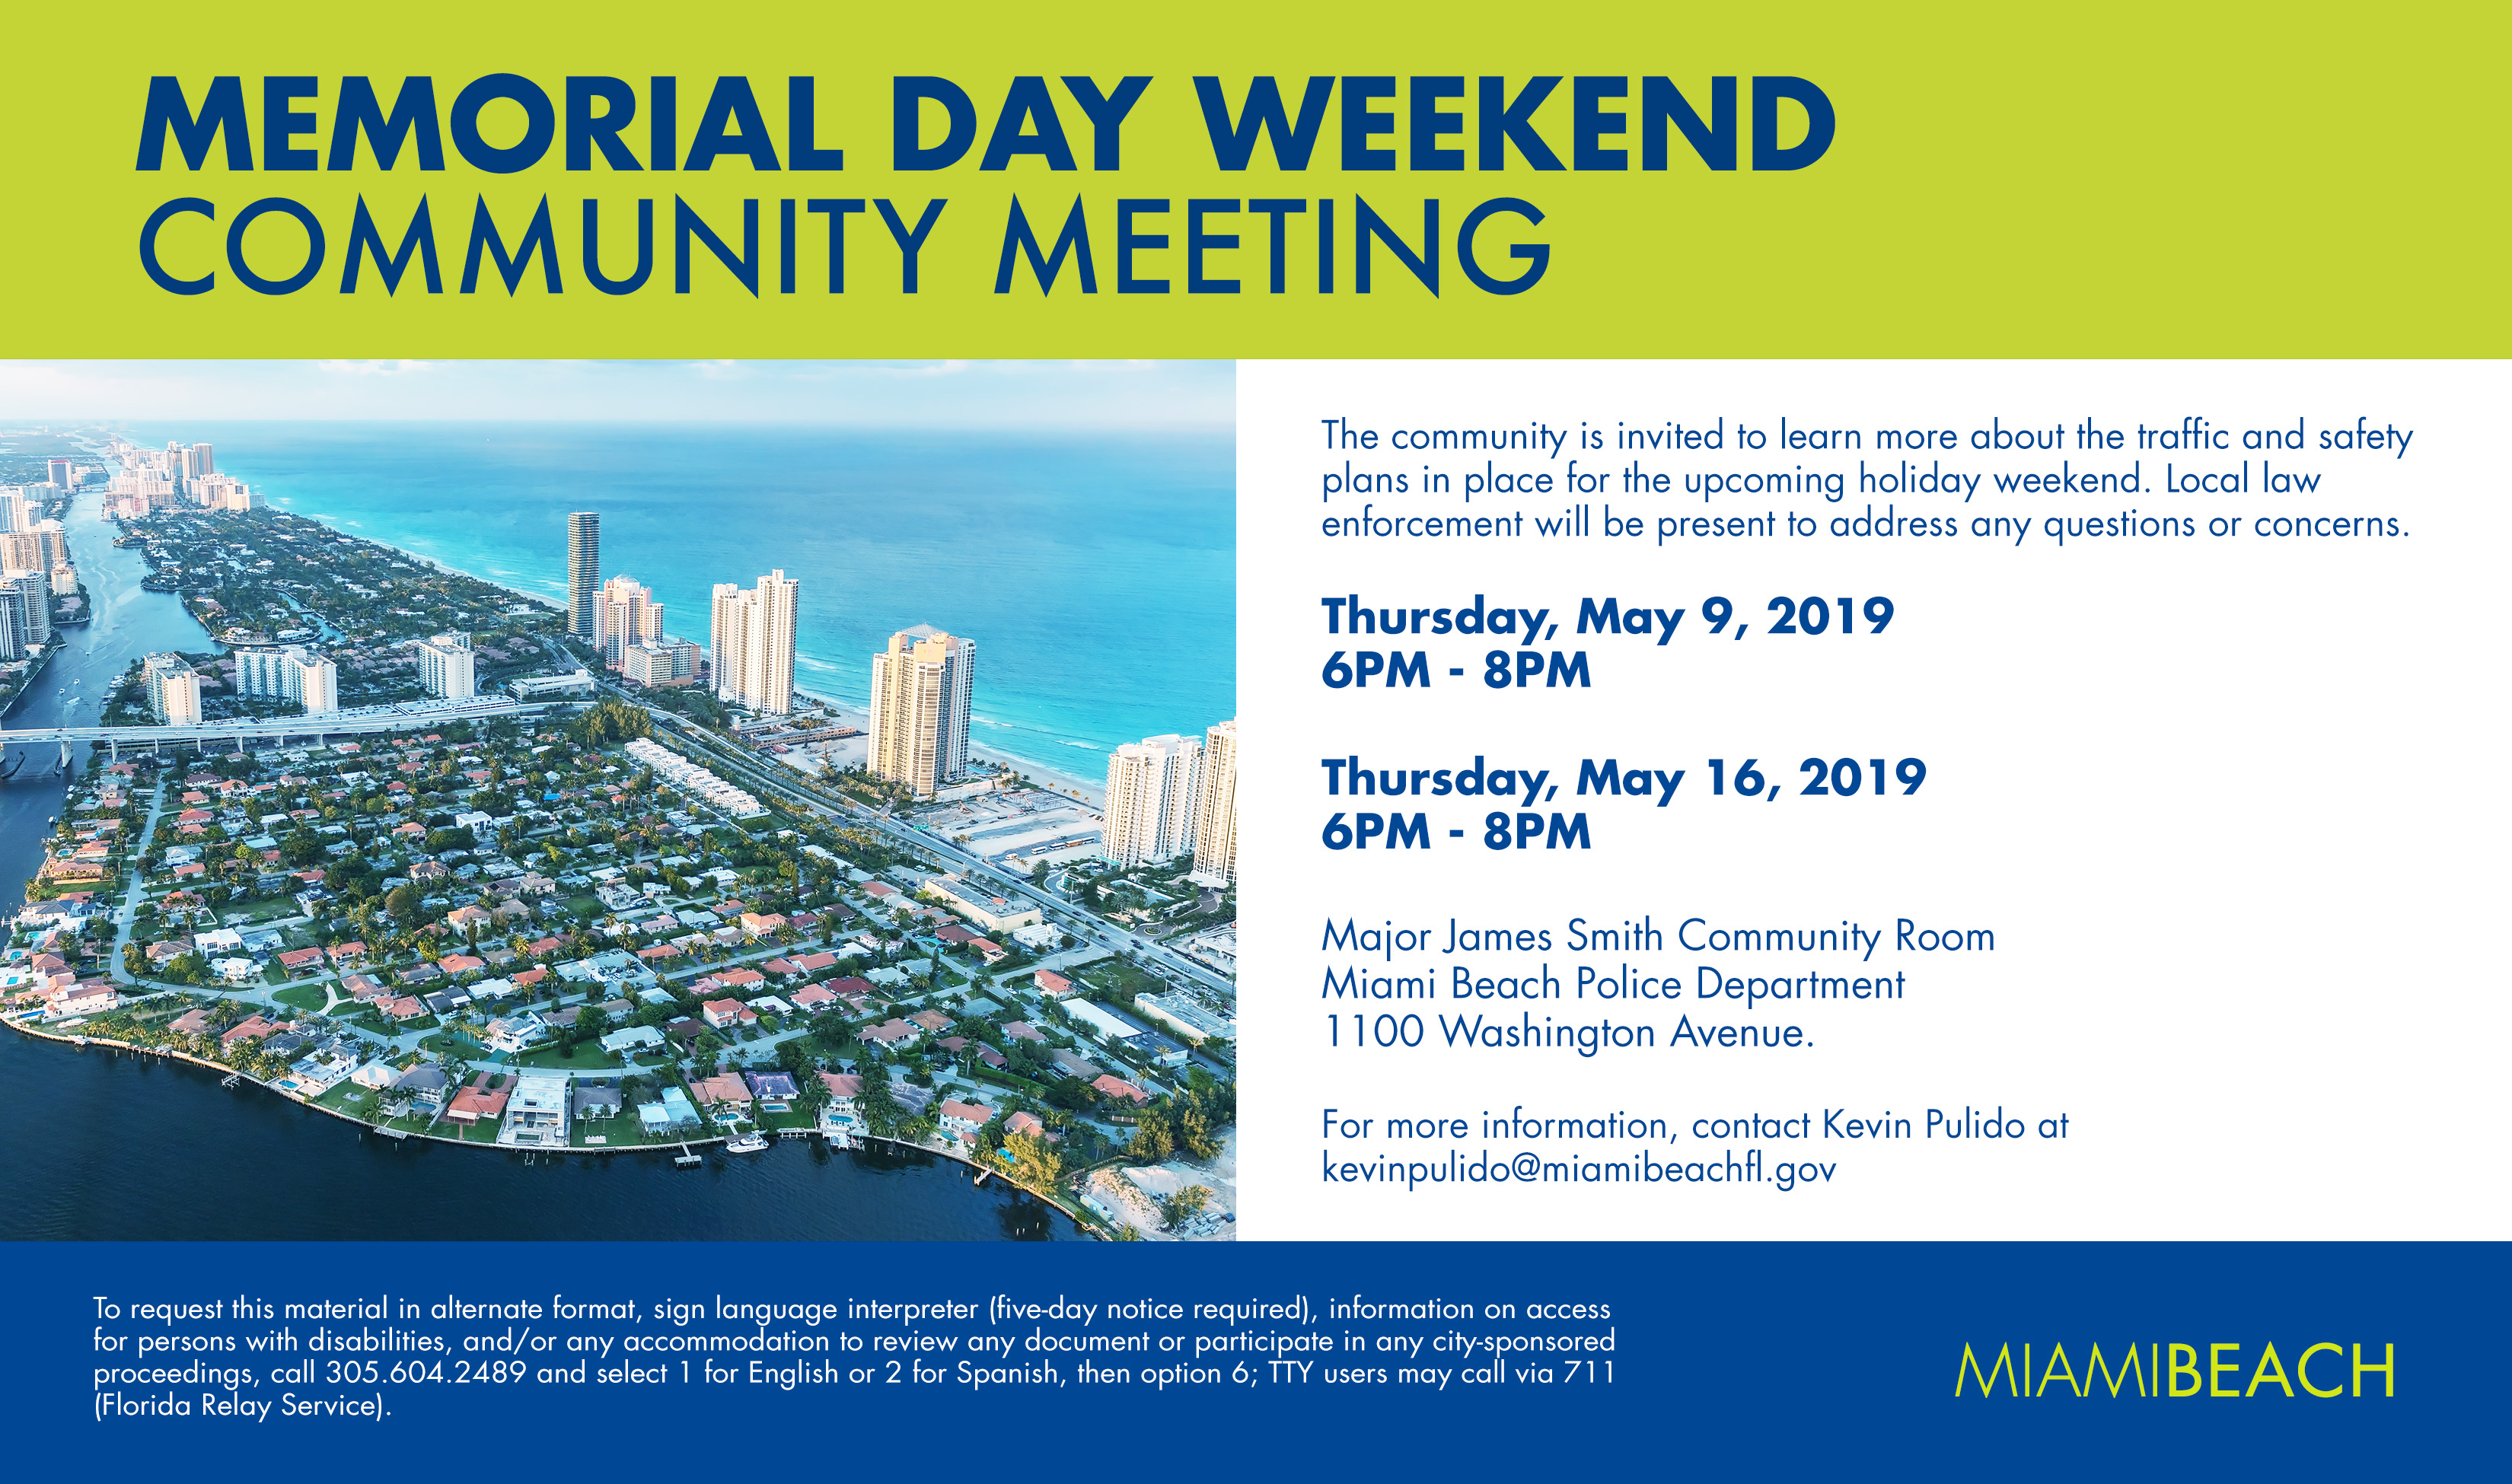 Memorial Day Weekend Community Meeting